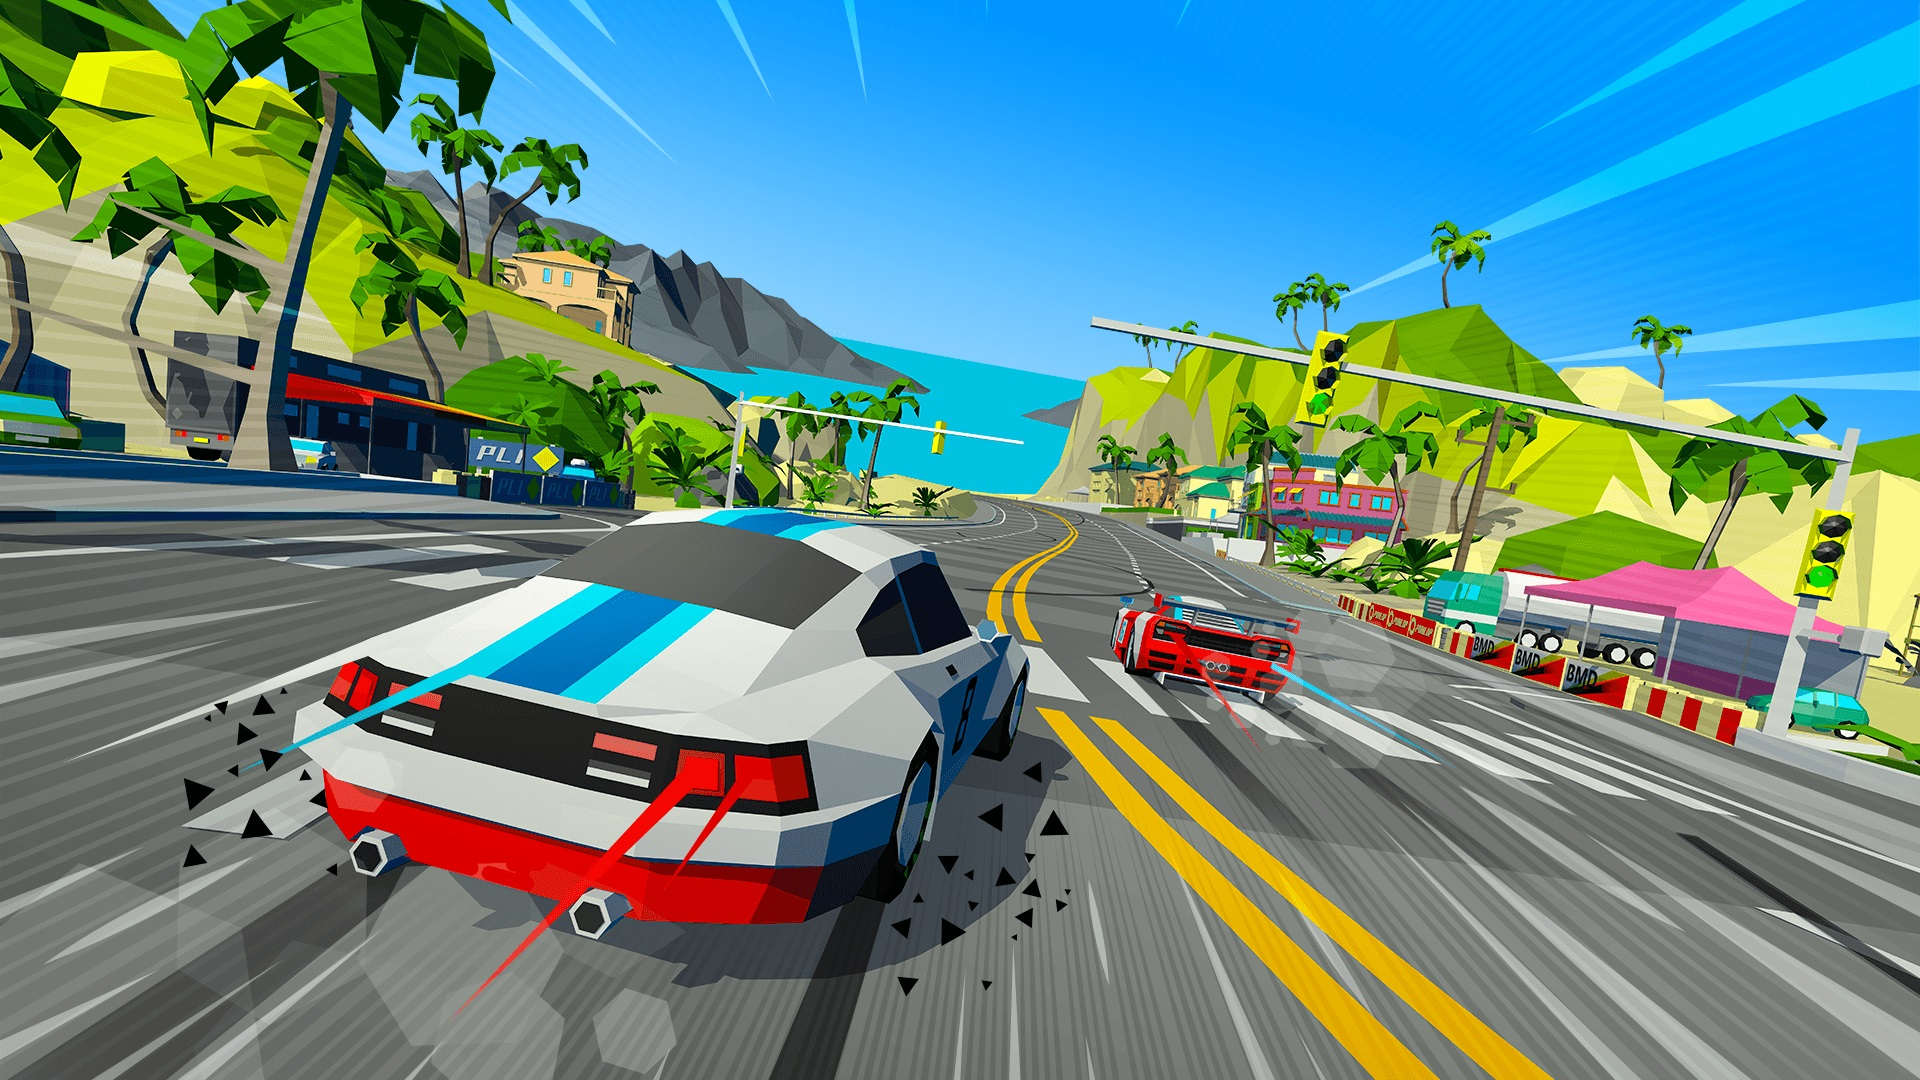 Contest: Win Hotshot Racing for Xbox One, PS4, or PC